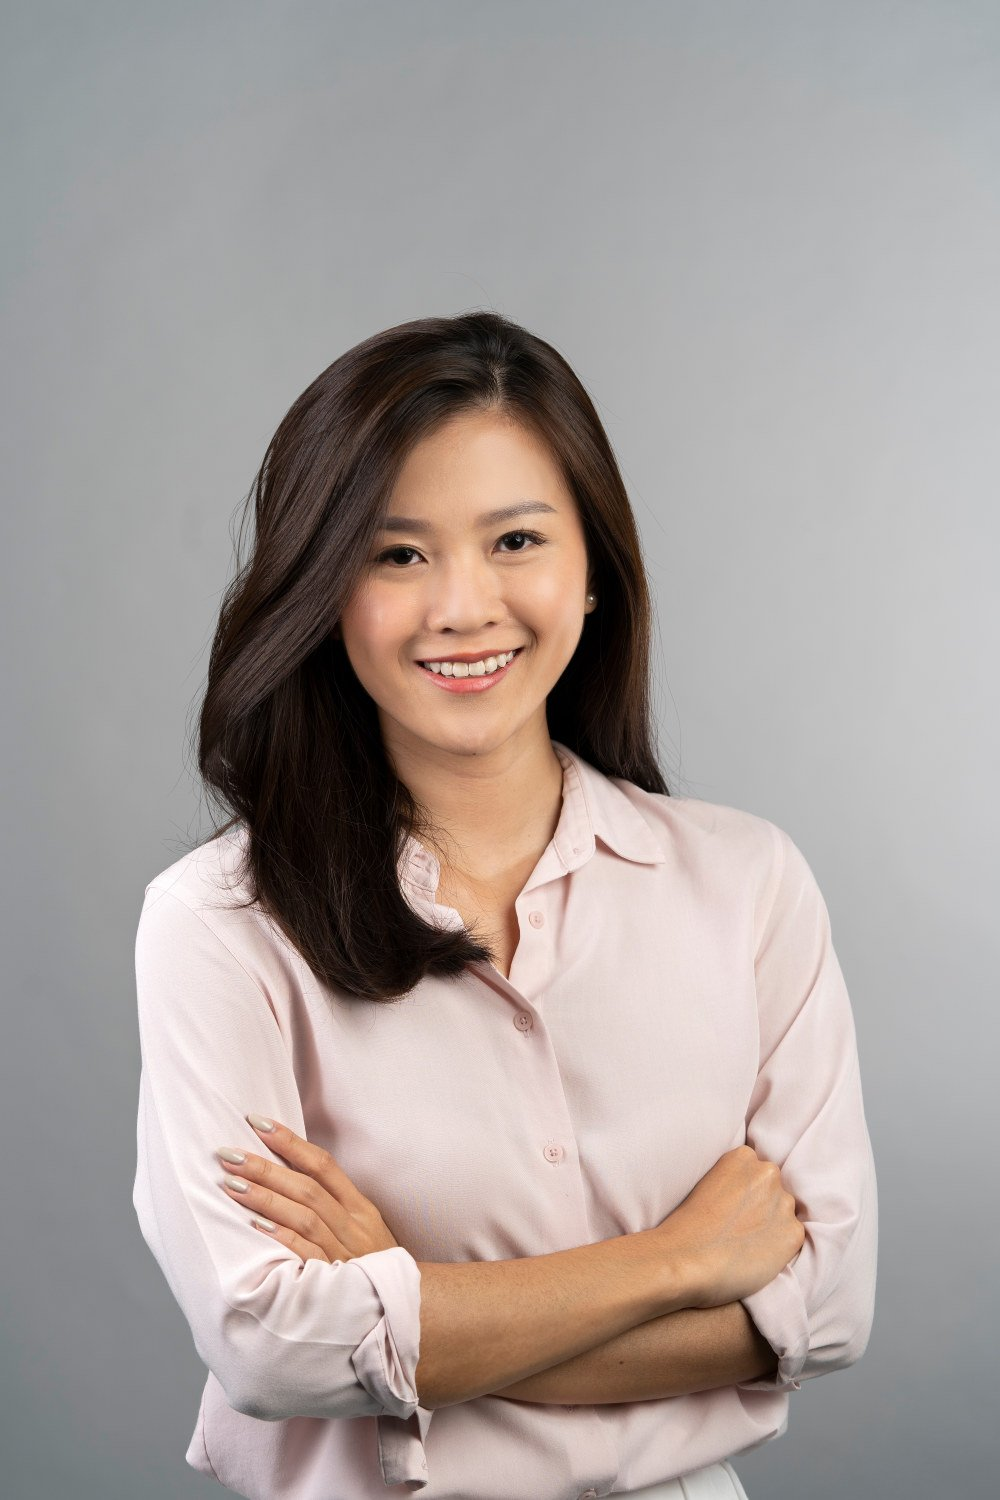 corporate headshot singapore a woman in light pink full-sleeved shirt